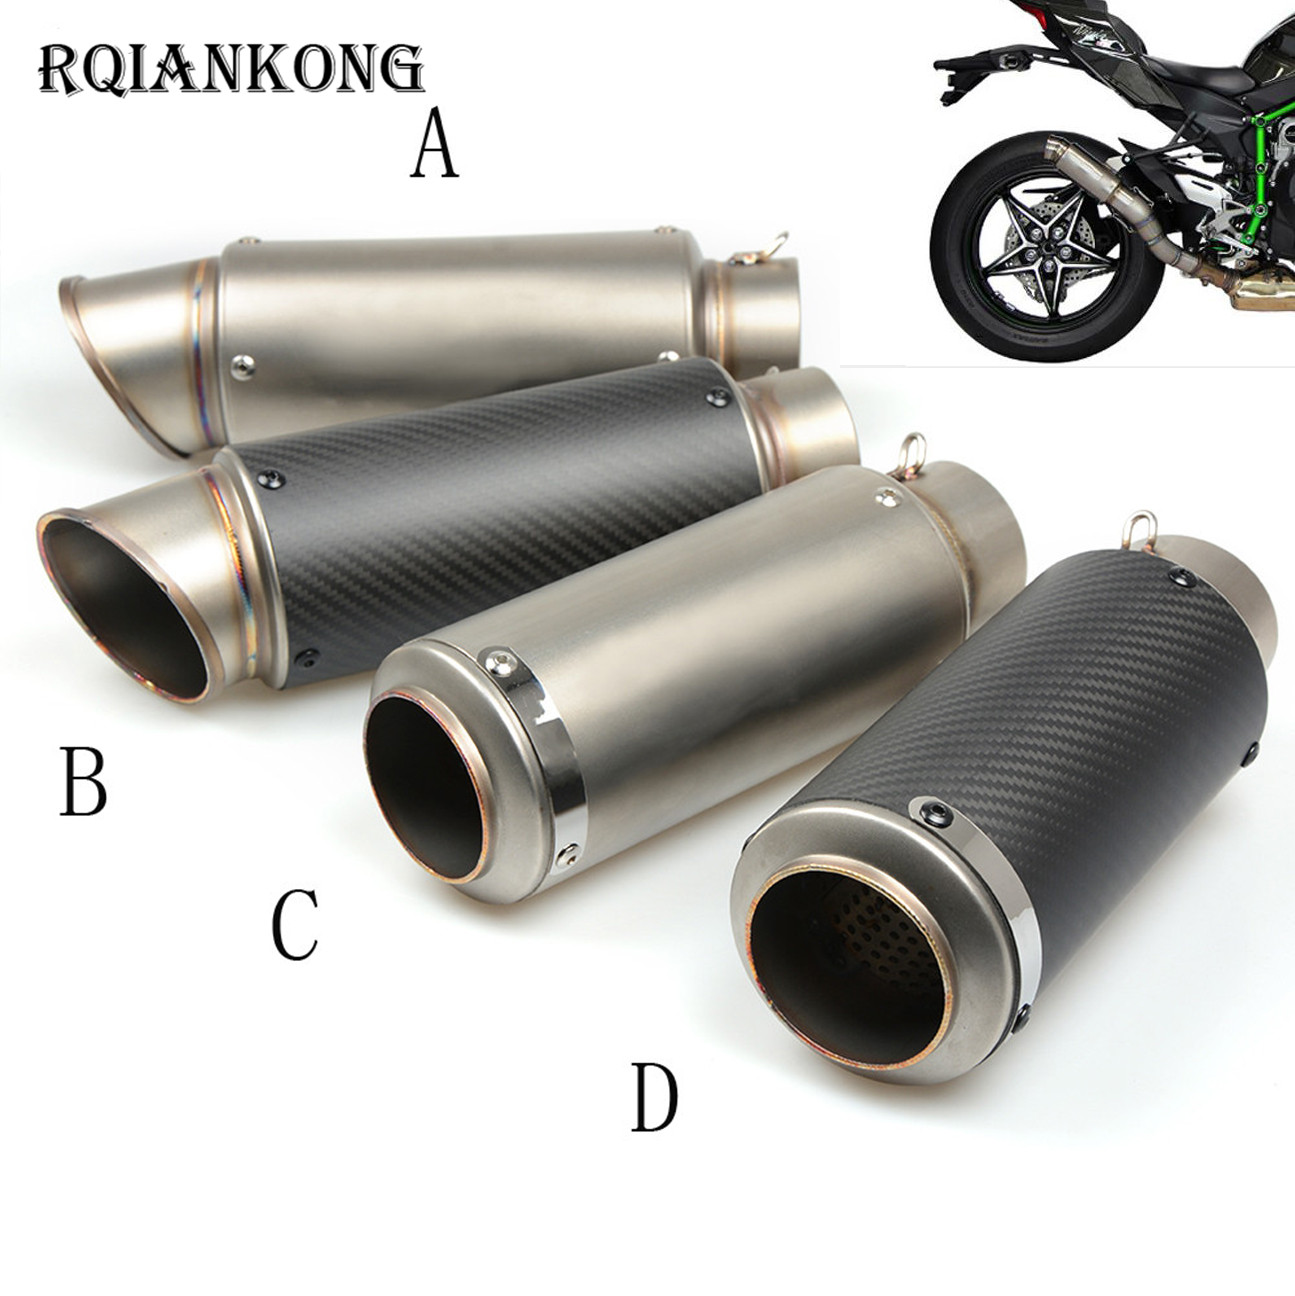 51 61MM Motorcycle Exhaust Pipe Scooter Modified 60mm exhaust Muffler pipe For kawasaki ZX6R ZX7R ZX10R ZX14R NINJA650R Z800 for honda cbr250r cbr 250 r cbr 250r cbr300r motorcycle exhaust pipe scooter modified 60mm exhaust muffler pipe 51 61mm